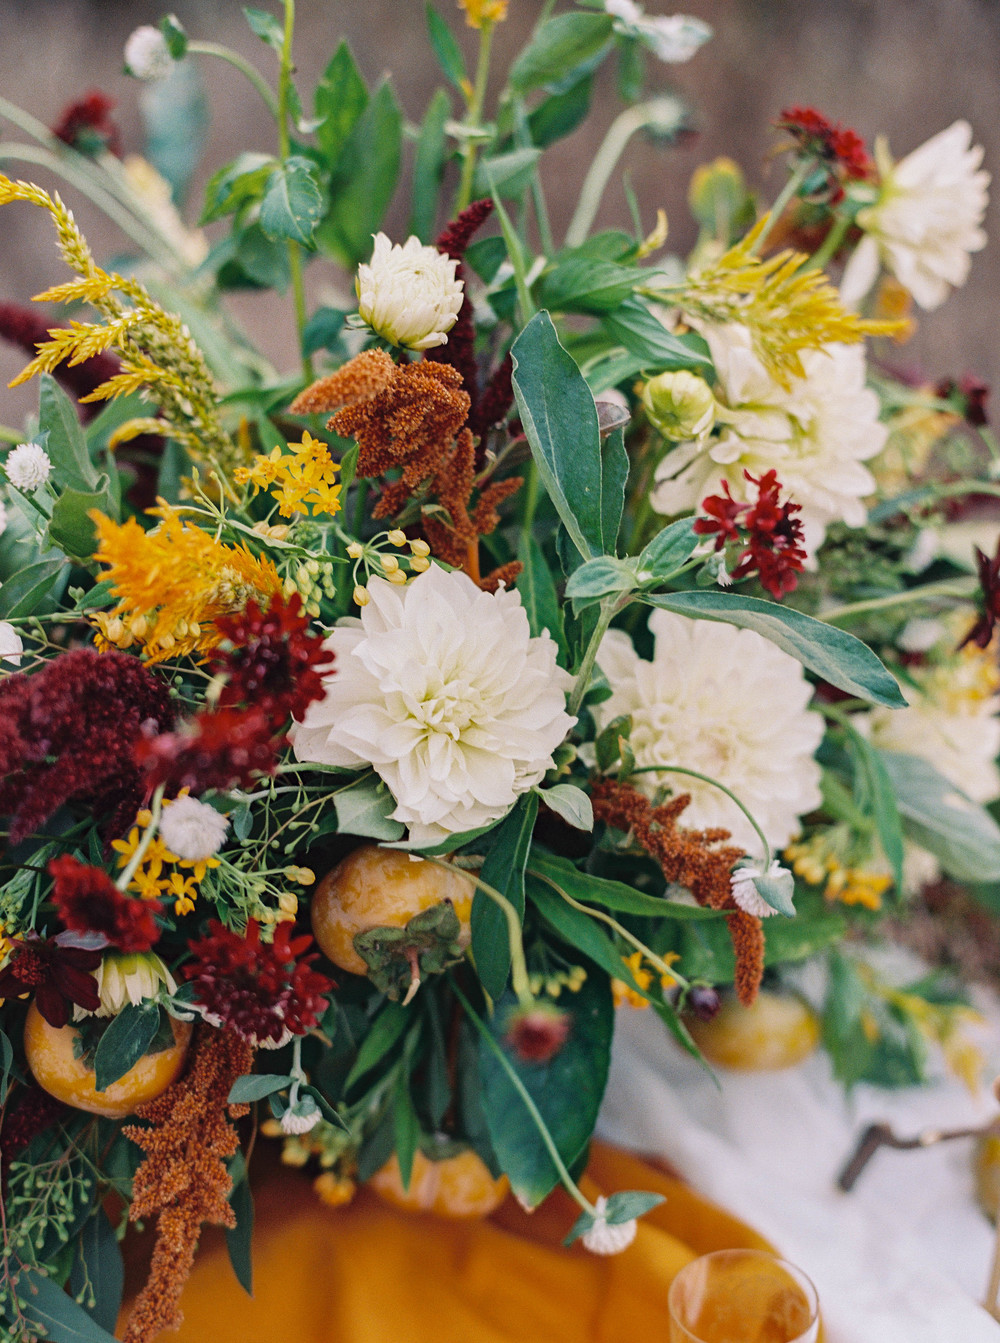 Meghan Mehan Photography - Fine Art Film Photography - San Francisco | Napa | Sonoma | Santa Barbara | Big Sur - 034.jpg